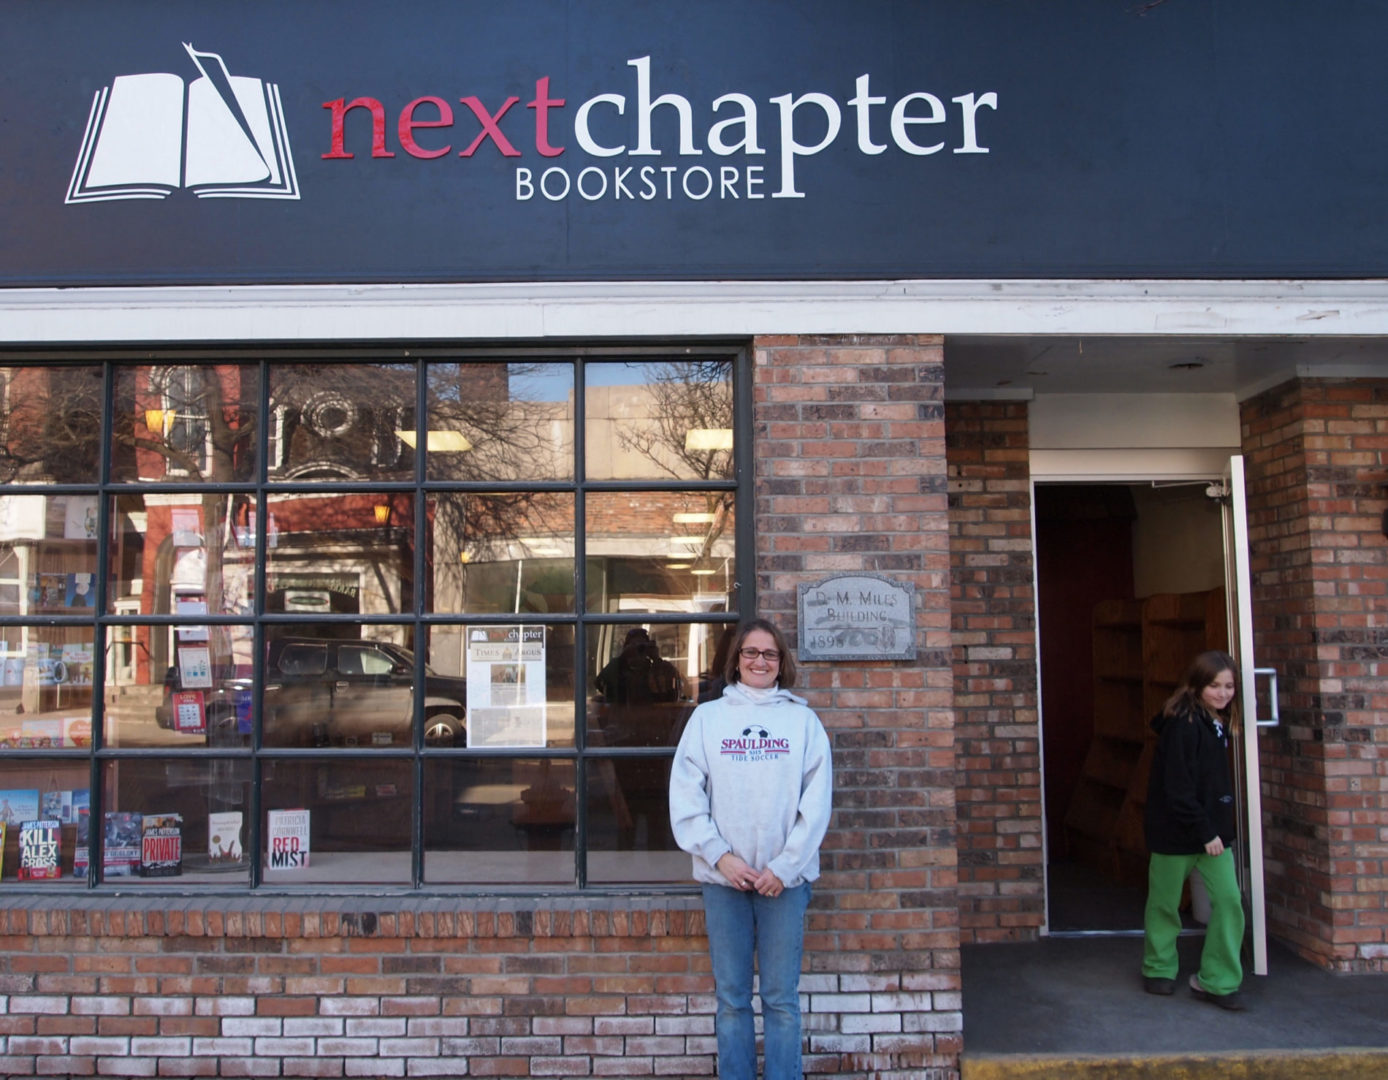 Cynthia Duprey of Next Chapter bookstore in Barre stands in front of her building, smiling, wearing a gray sweatshirt and jeans